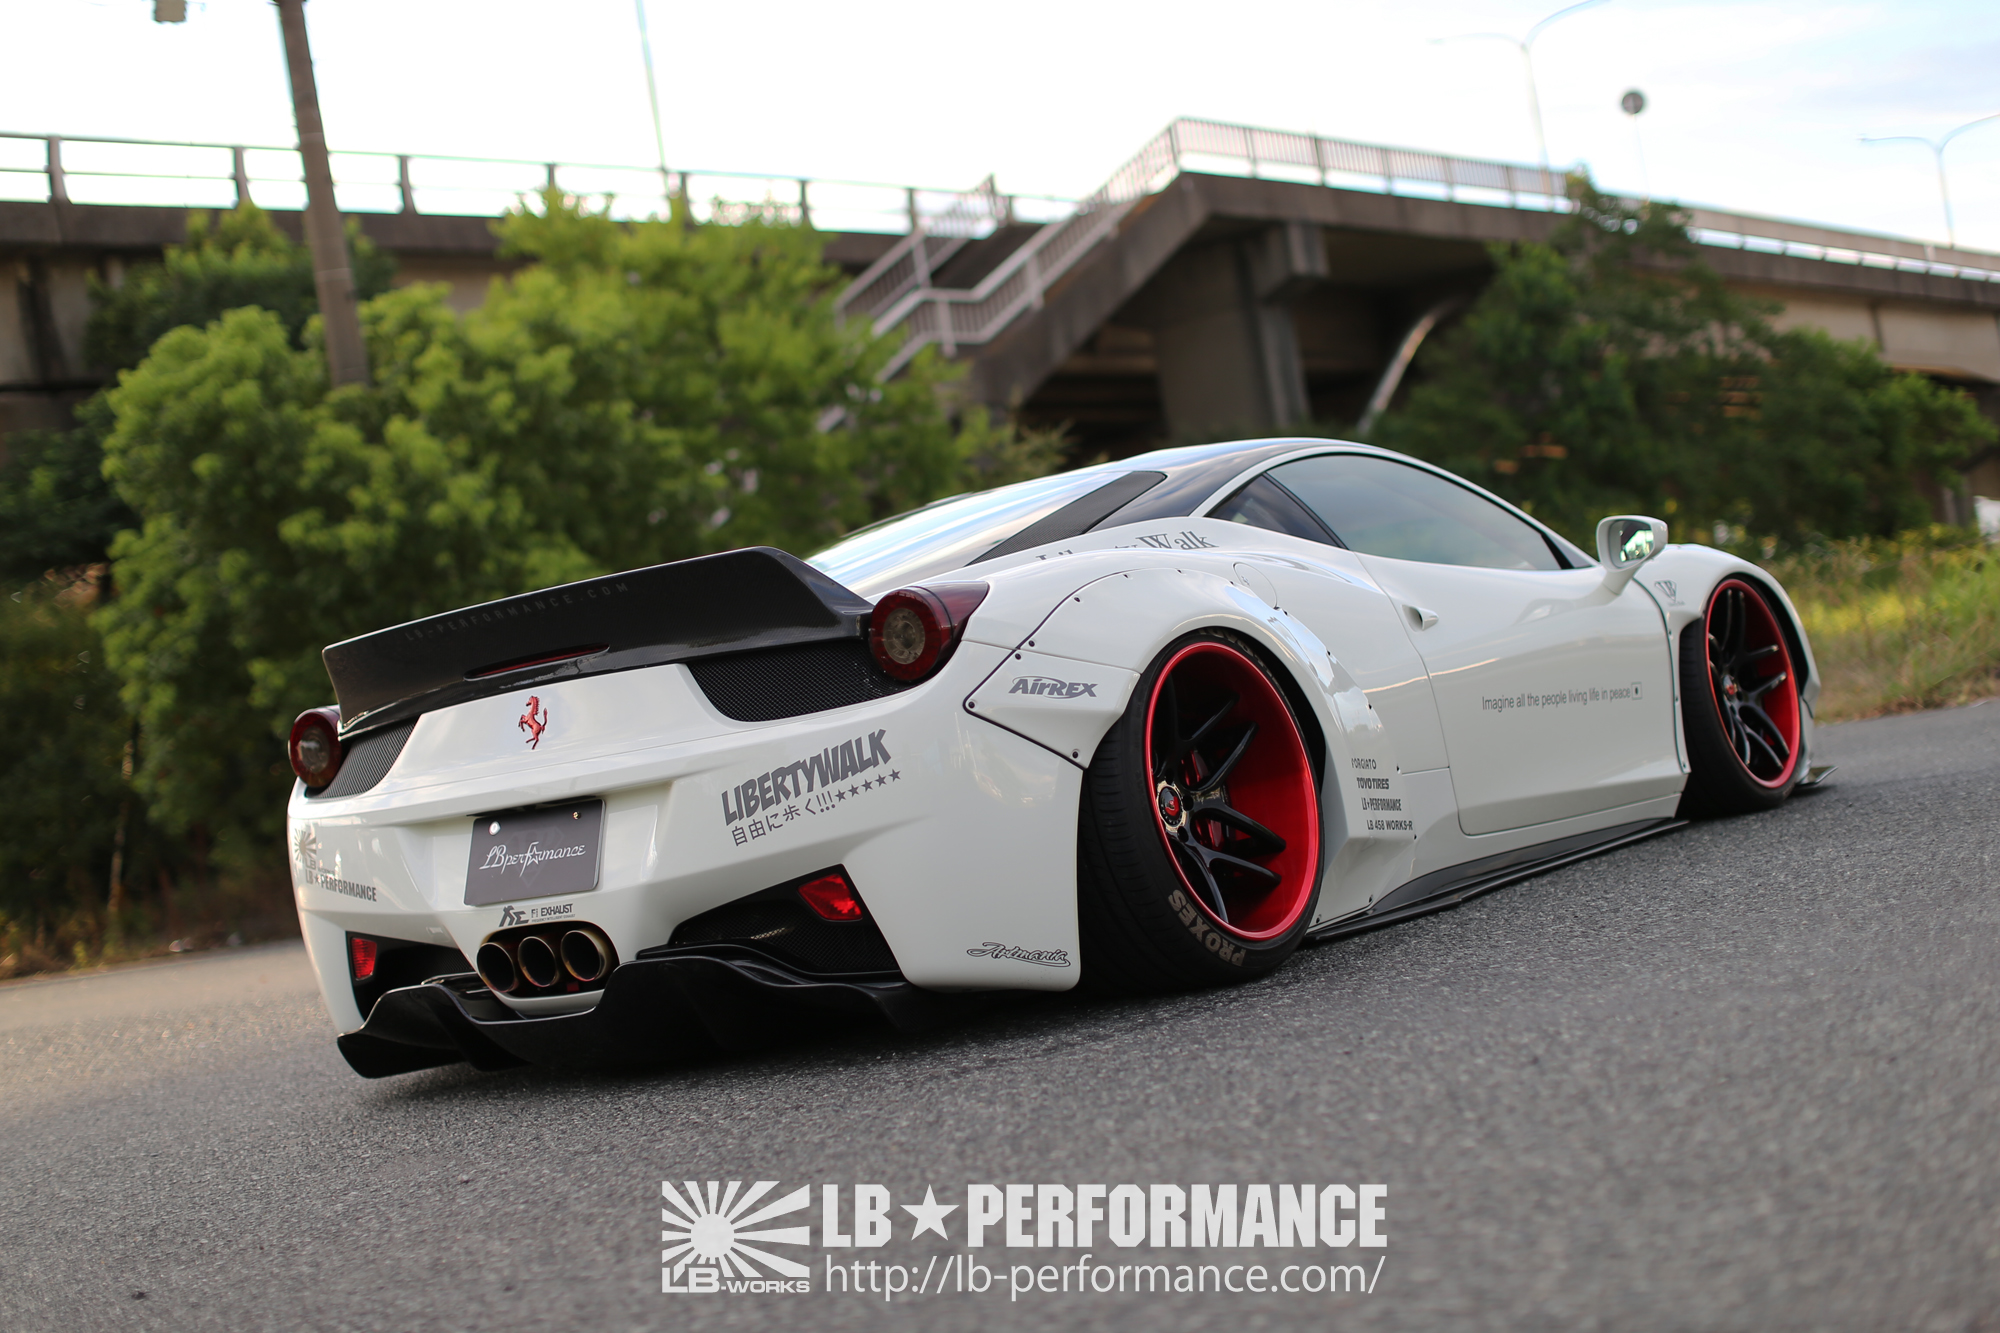 Liberty Walk Custom Car Ferrari 458 With Body Kit Liberty Walk リバティーウォーク